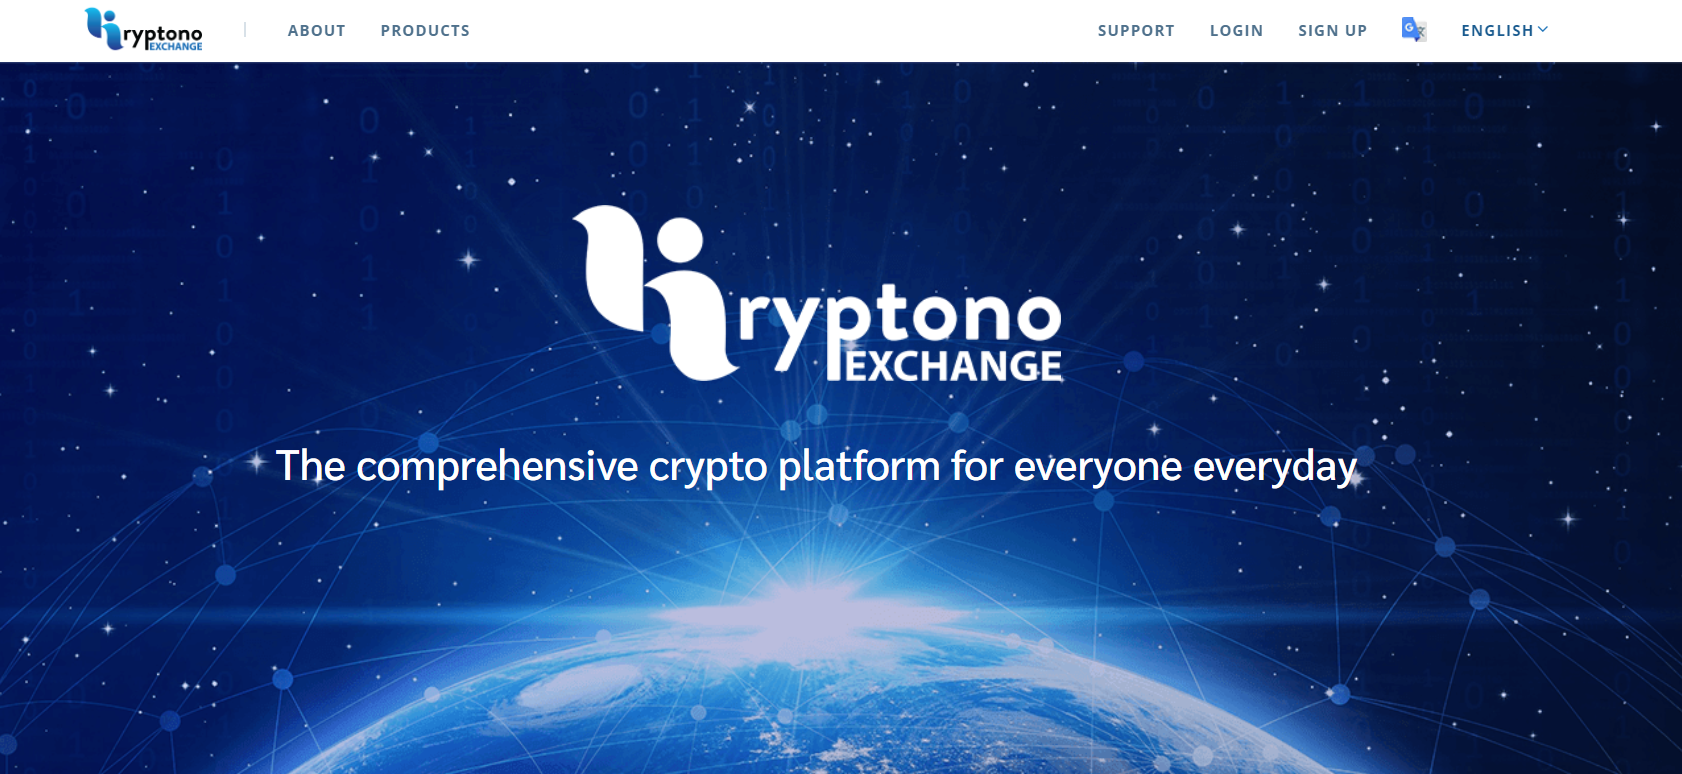 kryptono interface